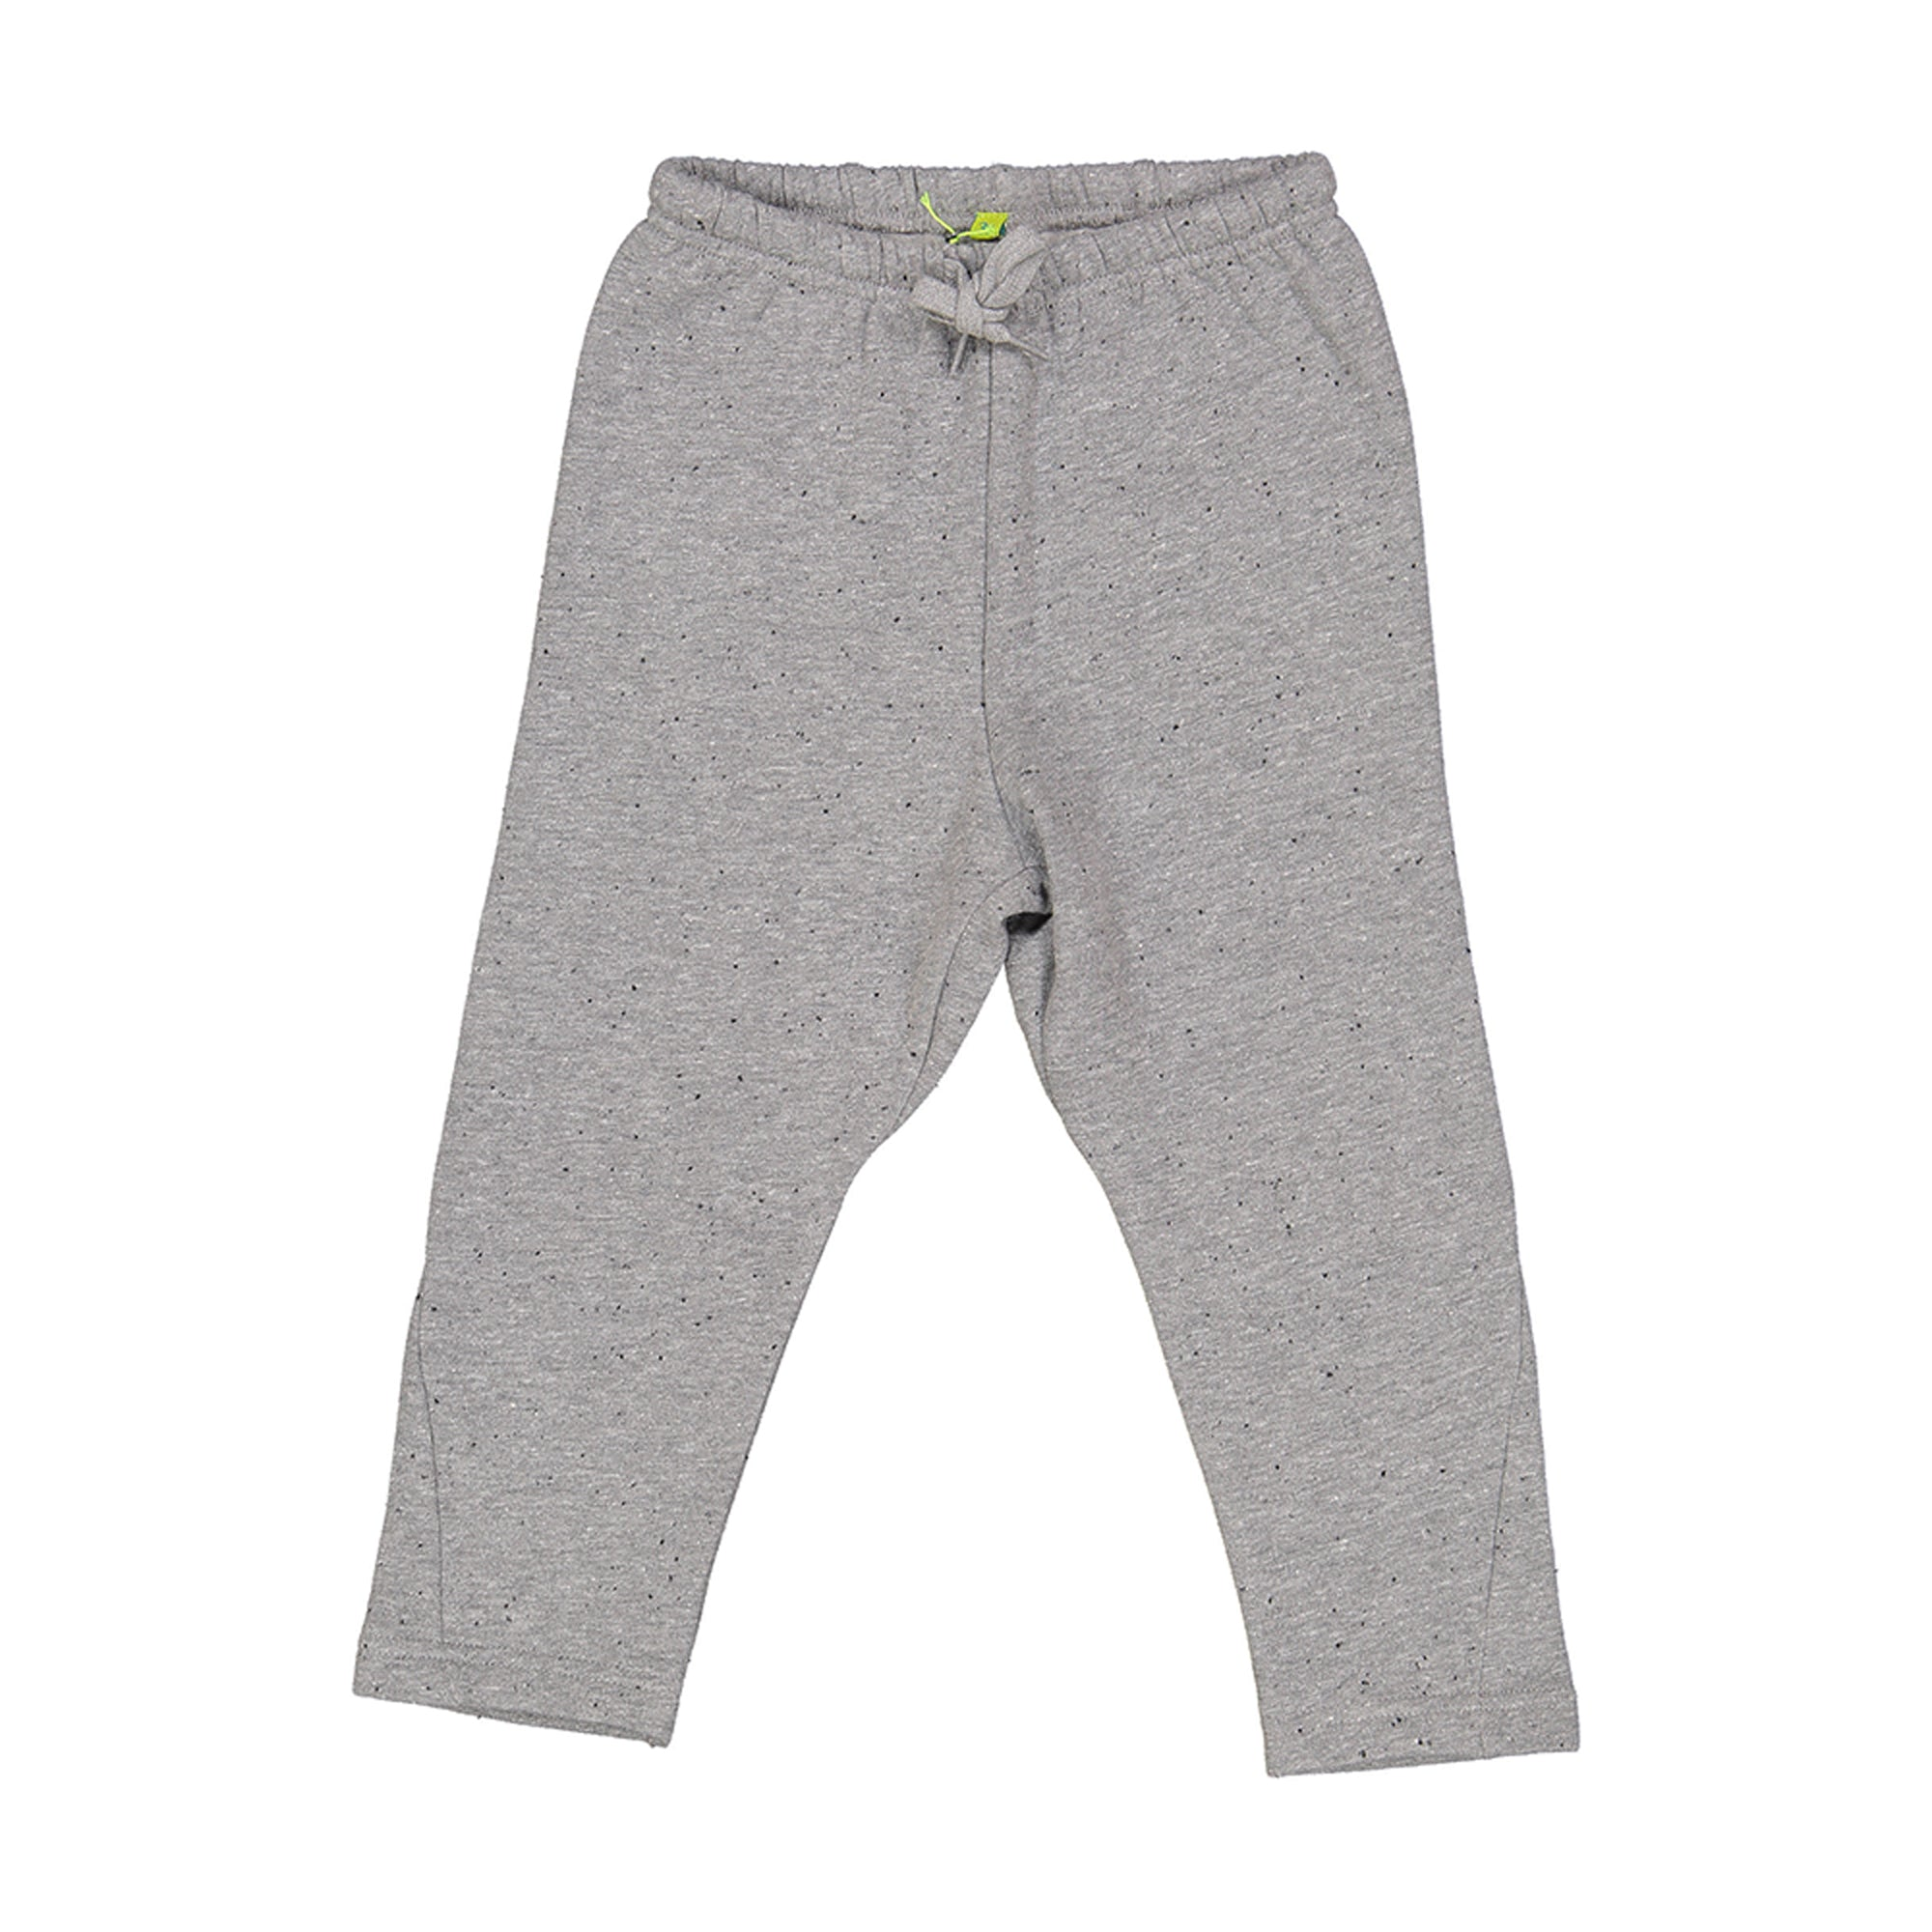 Moscow Pants grey